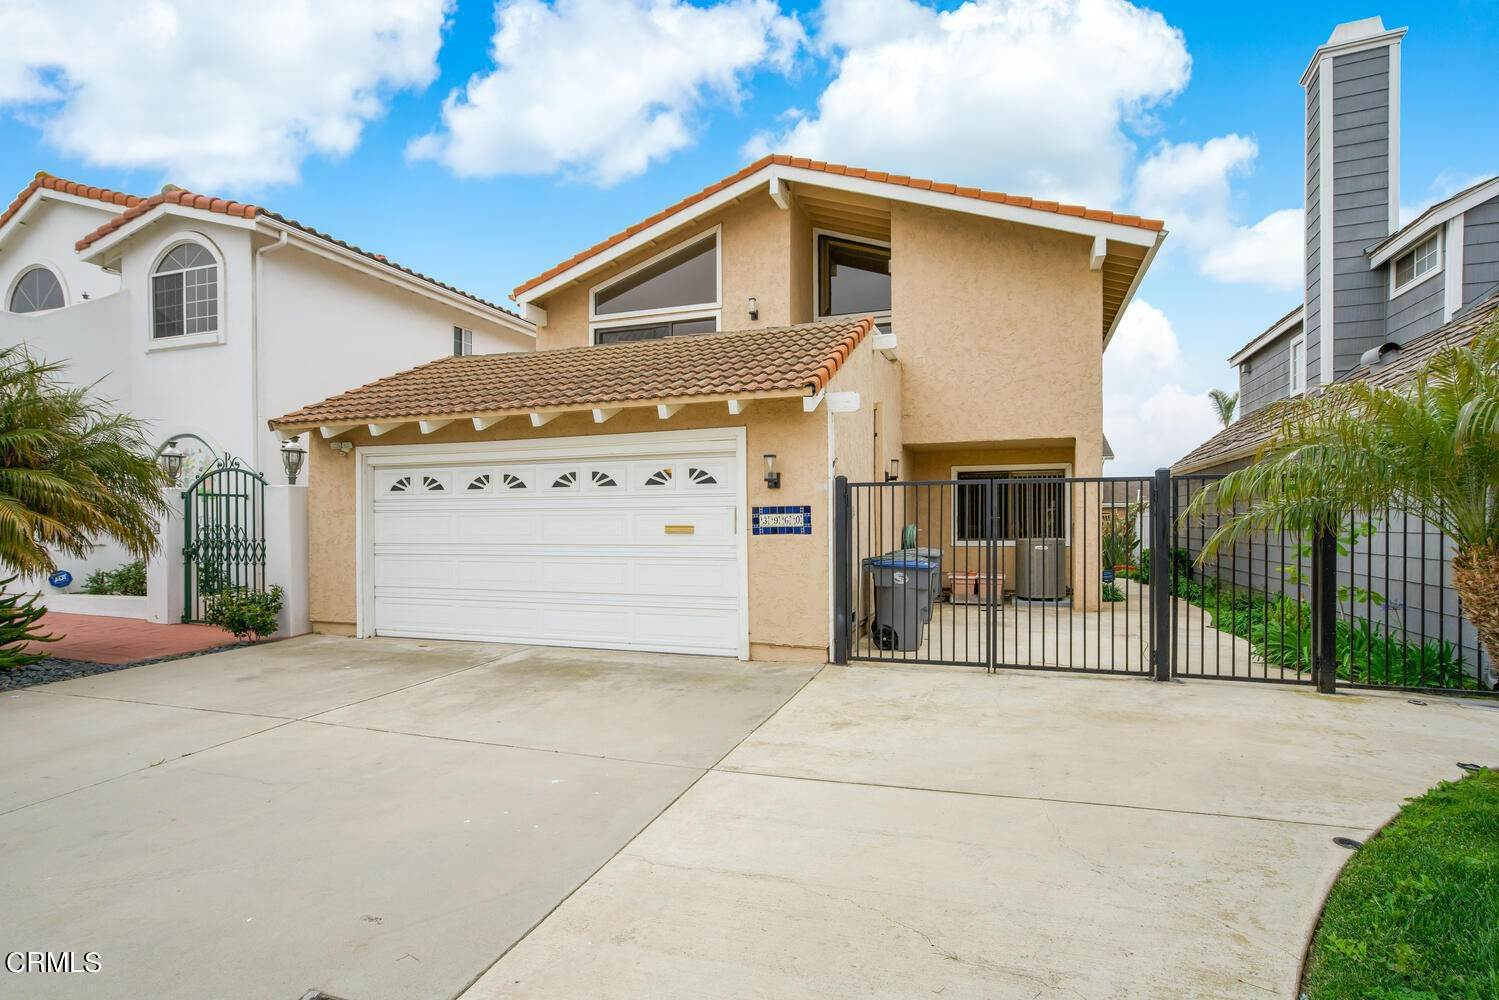 Single Family Homes for Sale at 3960 West Hemlock Street Oxnard, California 93035 United States